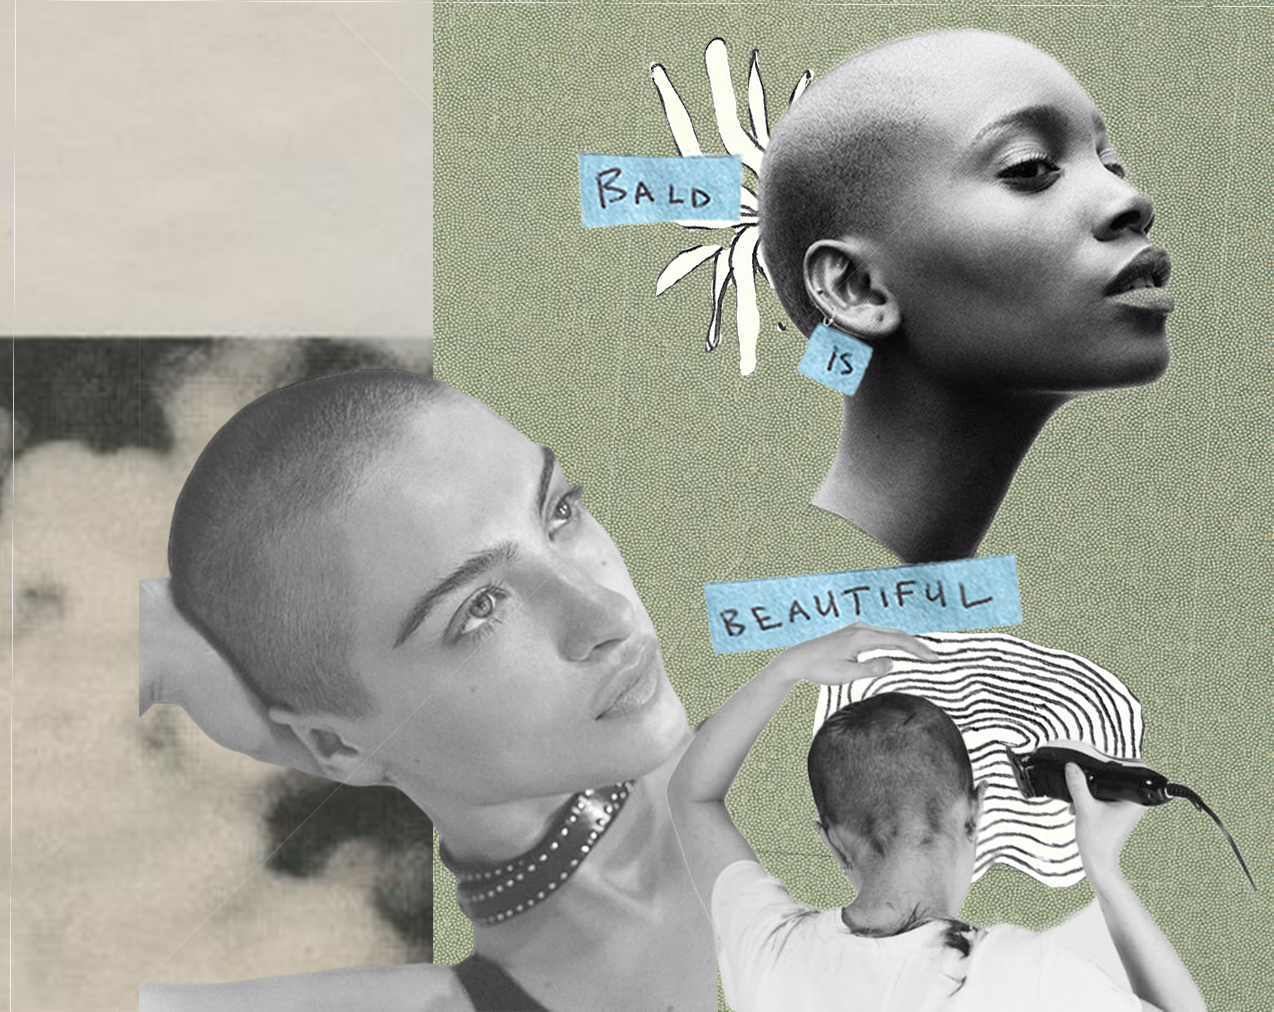 """Collage with three photographs of women with shaved heads and text that reads """"BALD IS BEAUTIFUL"""""""